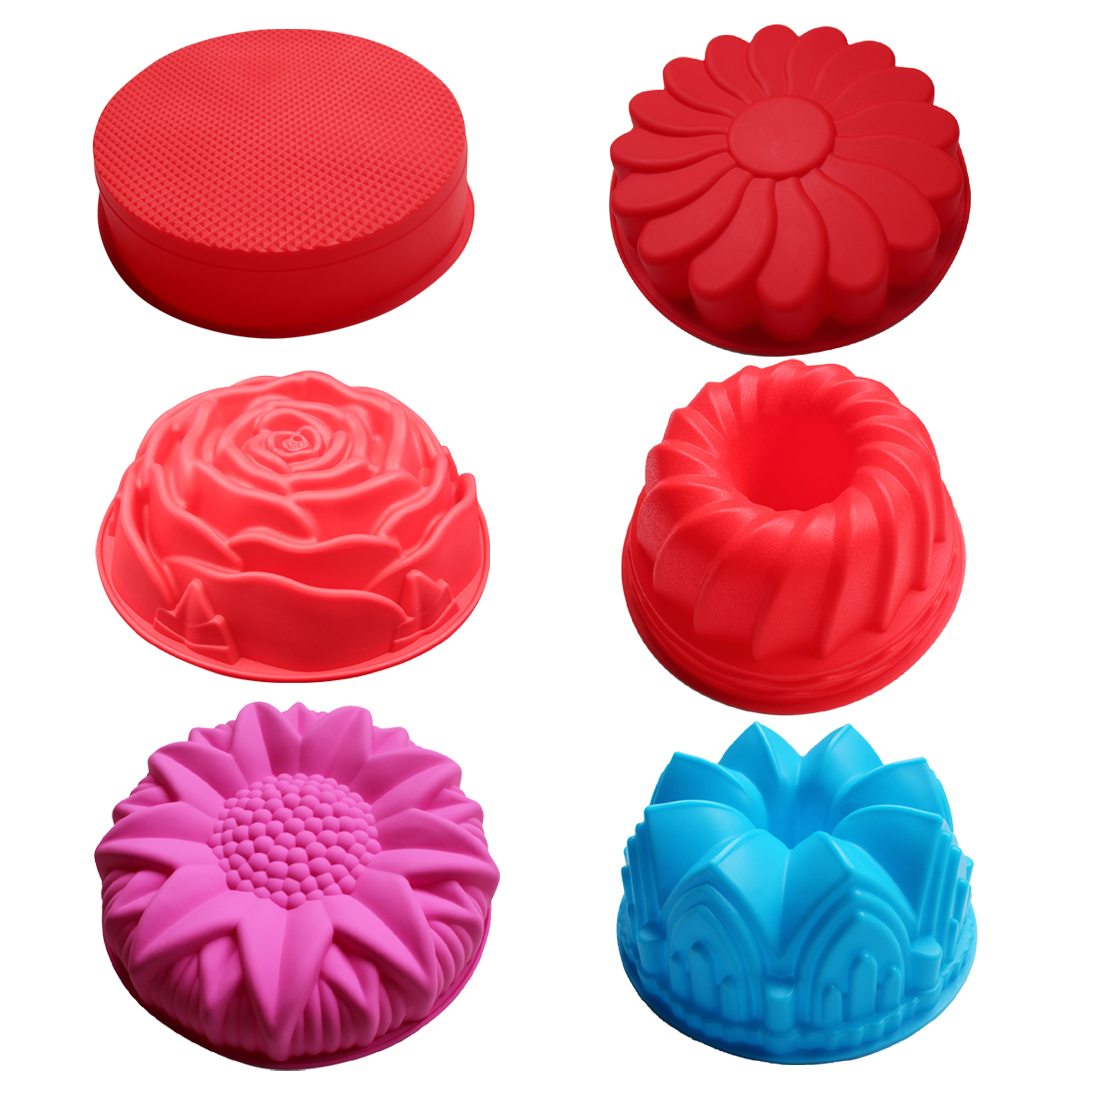 BAKER DEPOT Silicone Mold for big Cake Flower Crown shape psatry Baking Tools 3D Cake cake form Pizza Pan DIY birthday wedding